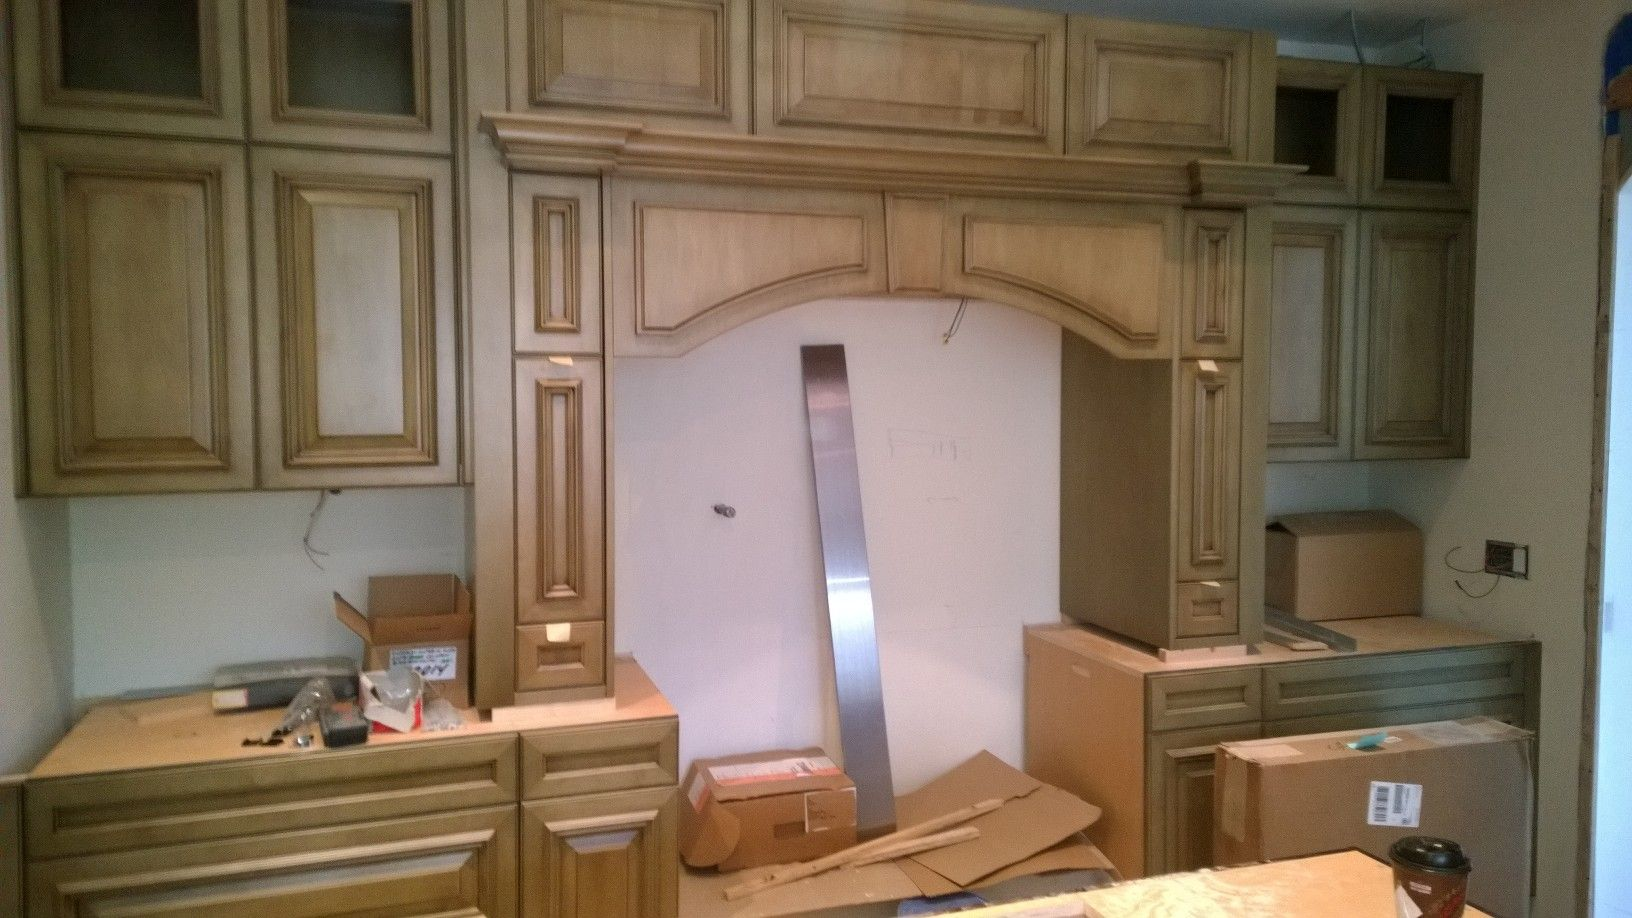 In the November update on Martin Spicuzza's Steffen kitchen remodel, Martin shares the progress made so far and what's left to be done. With photos, of course!